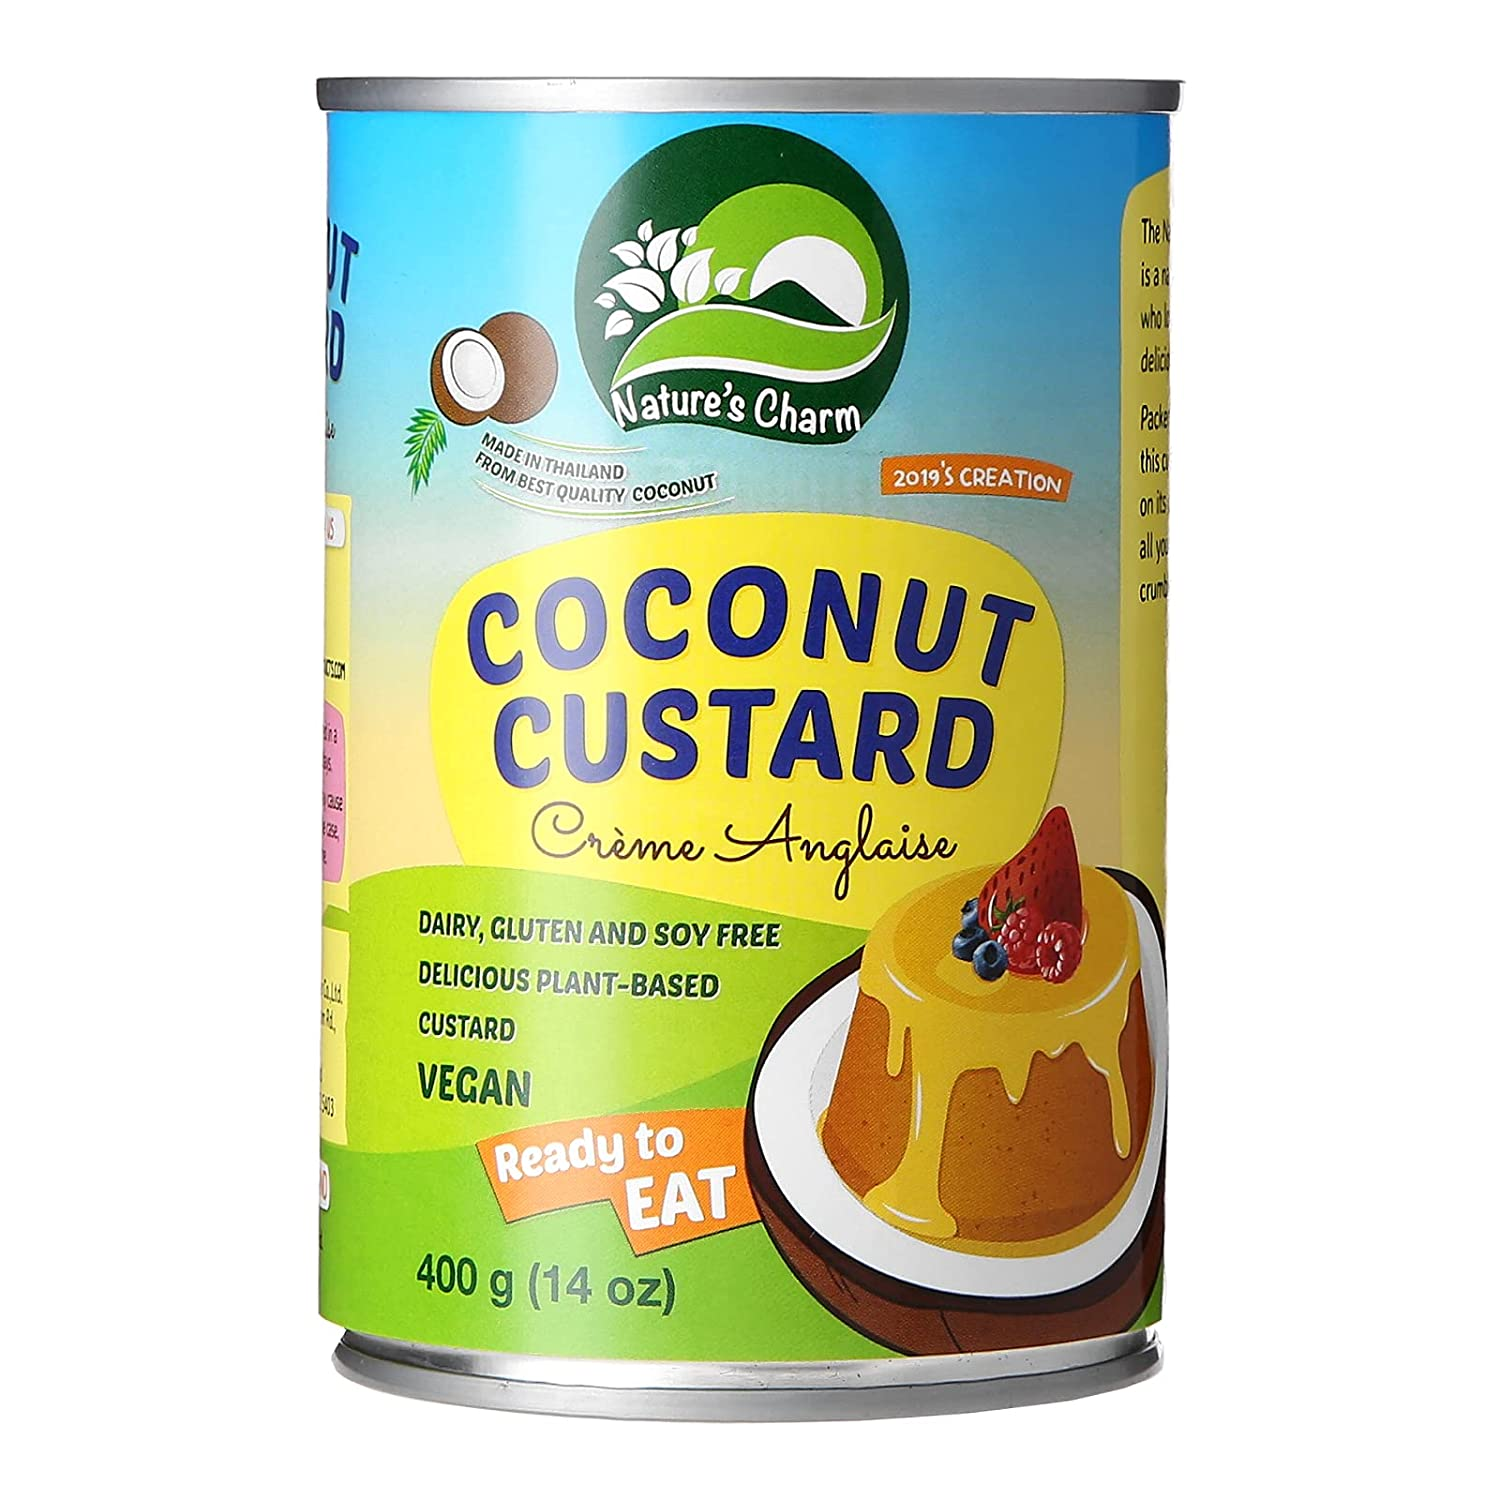 Nature's Charm Coconut Custard 14 of Pack Ranking Dallas Mall TOP17 6 ounce